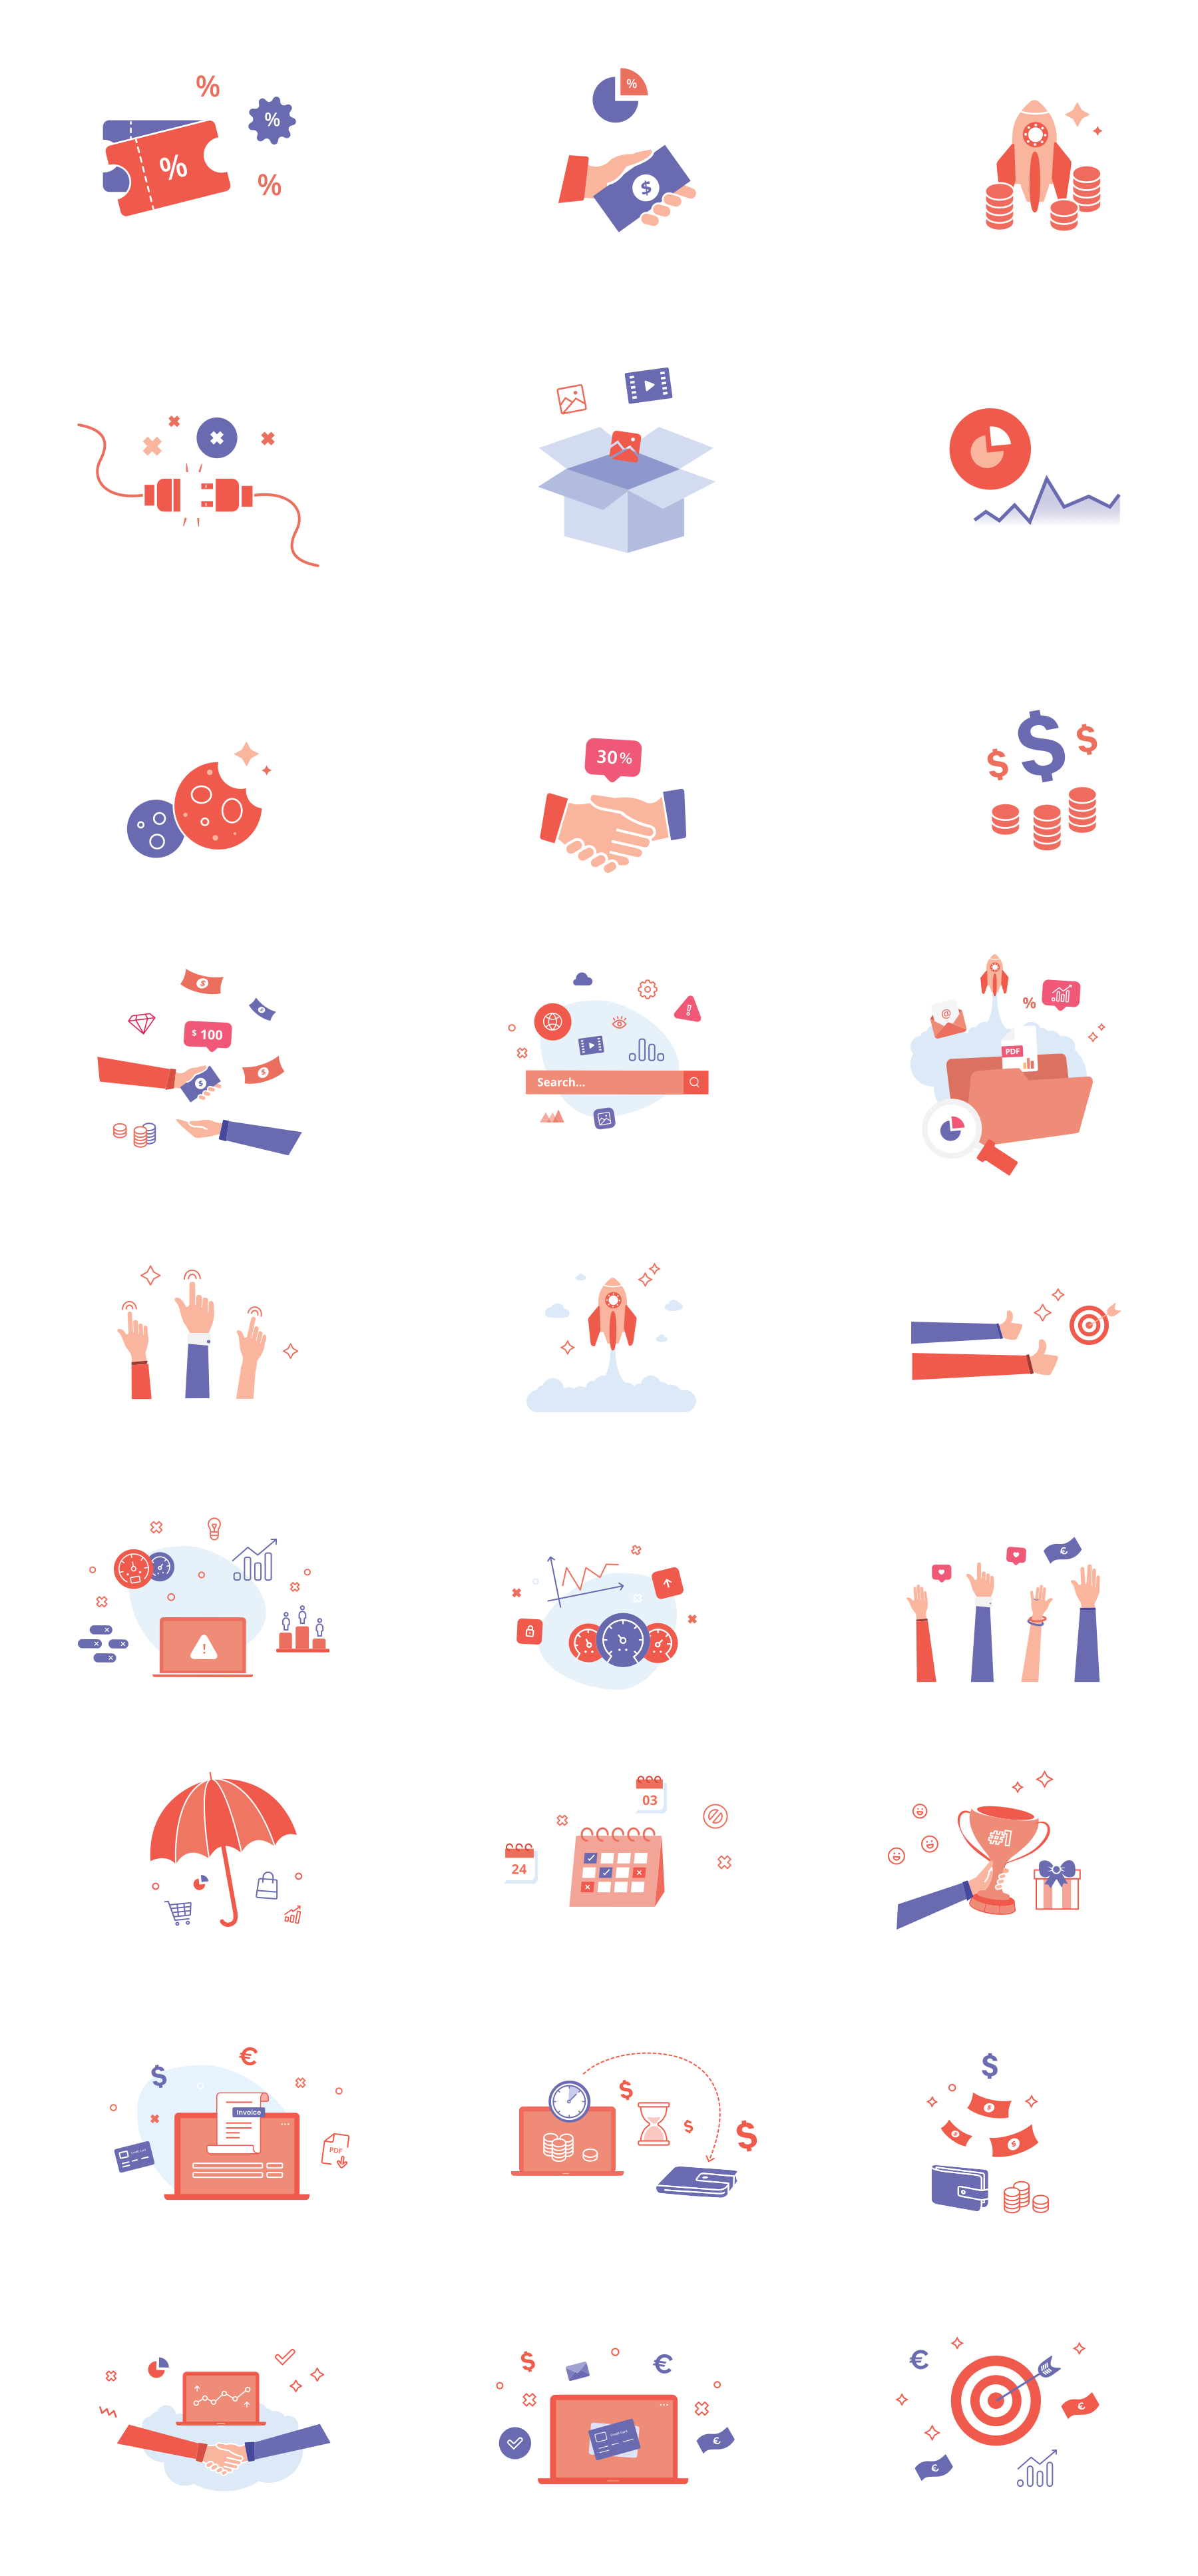 Colorful Free Icons - Icons are ready to use in your project right away. We designed them in Adobe Illustrator. They are 100% vector, with preserved layers, you will be able to edit them easily. The file contains icons in two styles: 27 full-color icons and 27 slim icons.